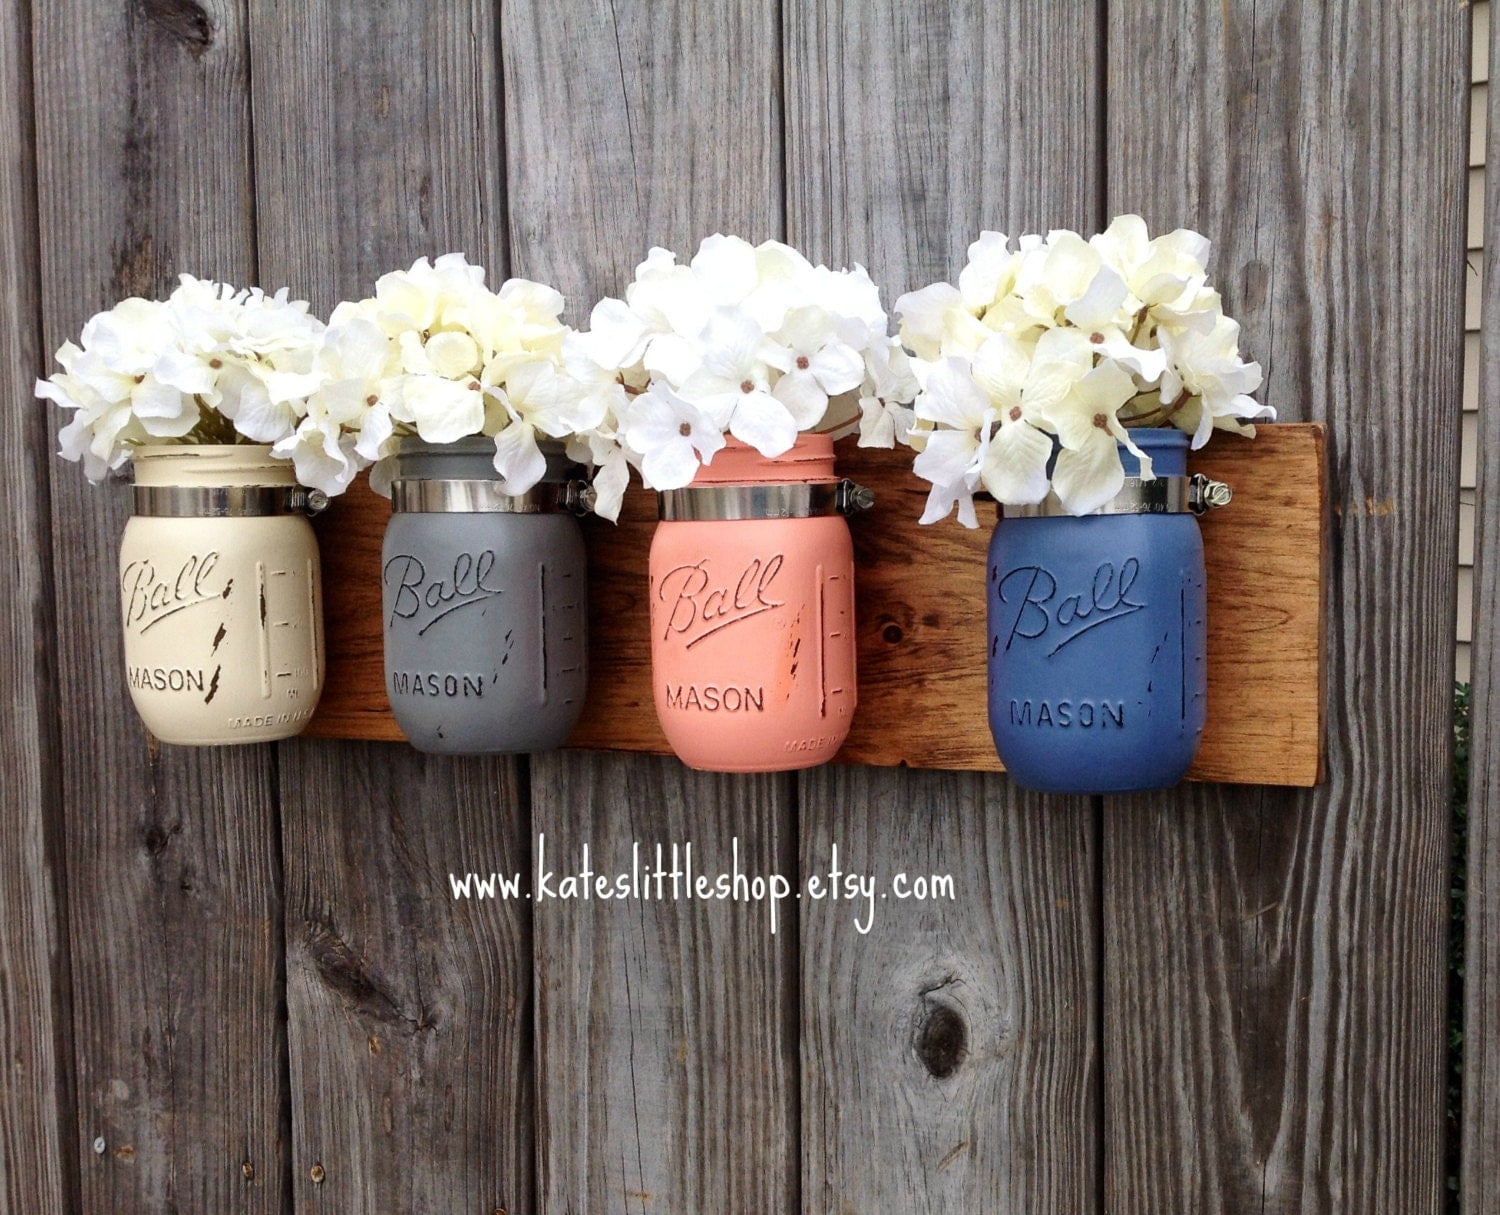 Wall Decor With Mason Jars : Pint size mason jar wall decor hanging rustic home